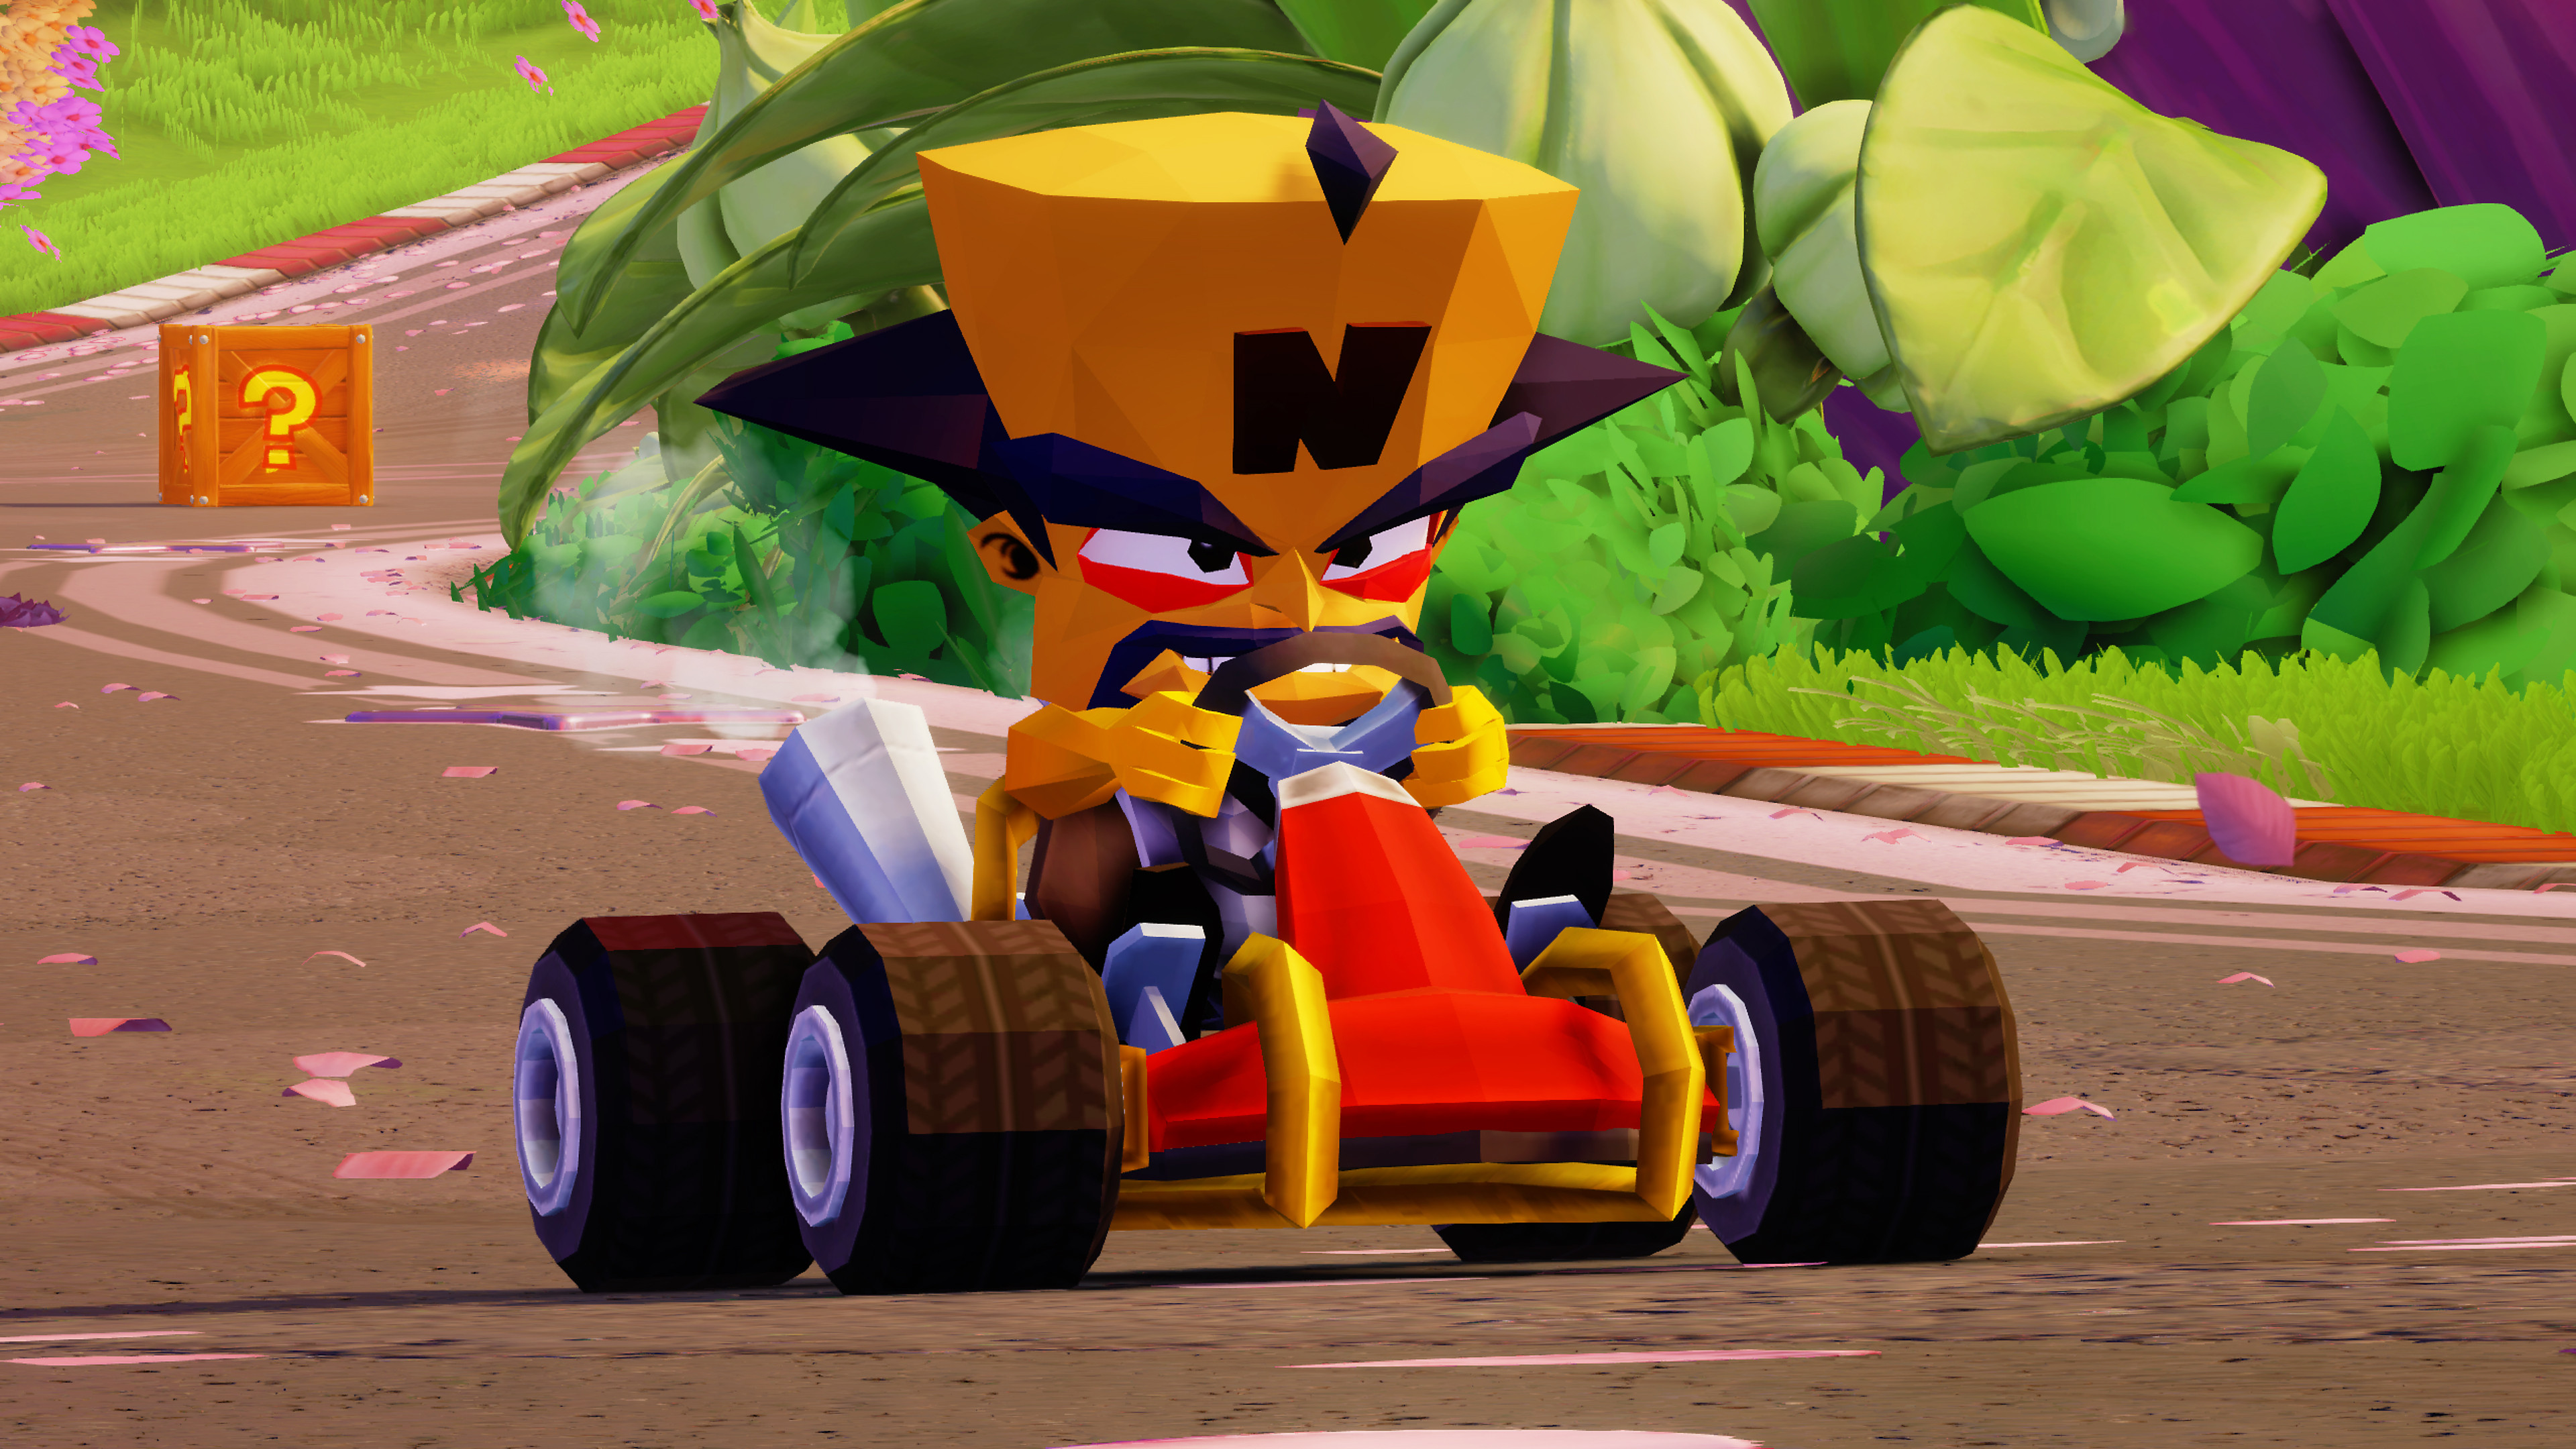 Crash Team Racing Nitro-Fueled - Exclusive Content Screenshot 3